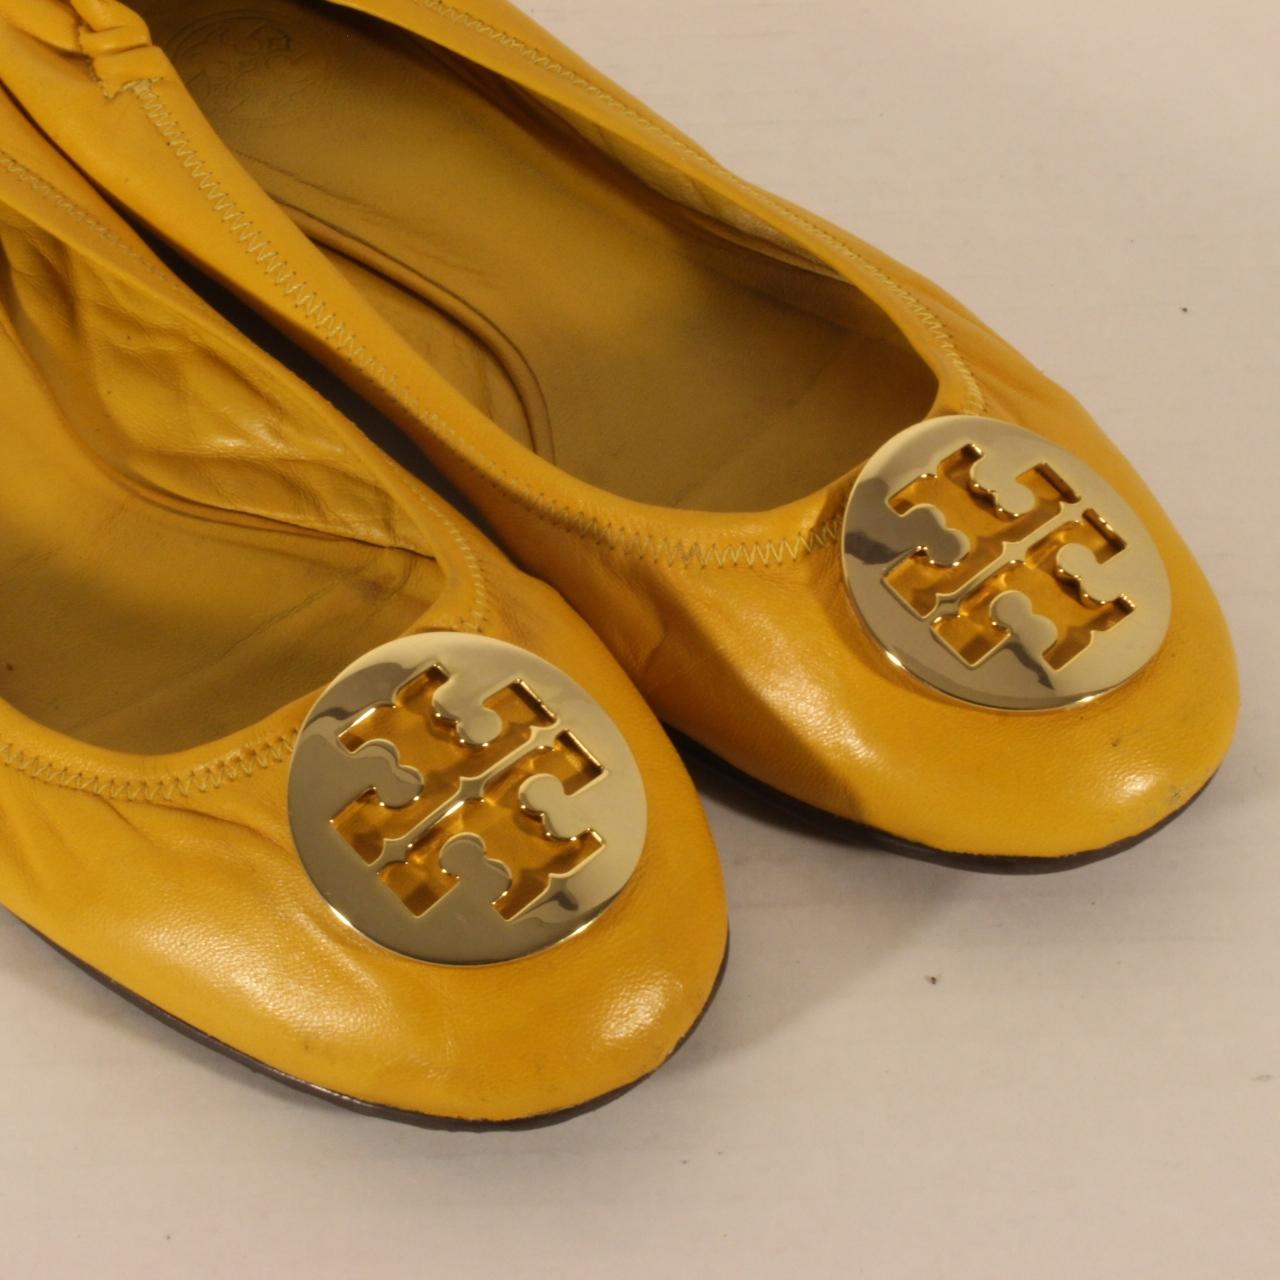 e93c5617a ... italy tory burch yellow reva soft leather ballet big gold logo flats  size 4ac19 2abc7